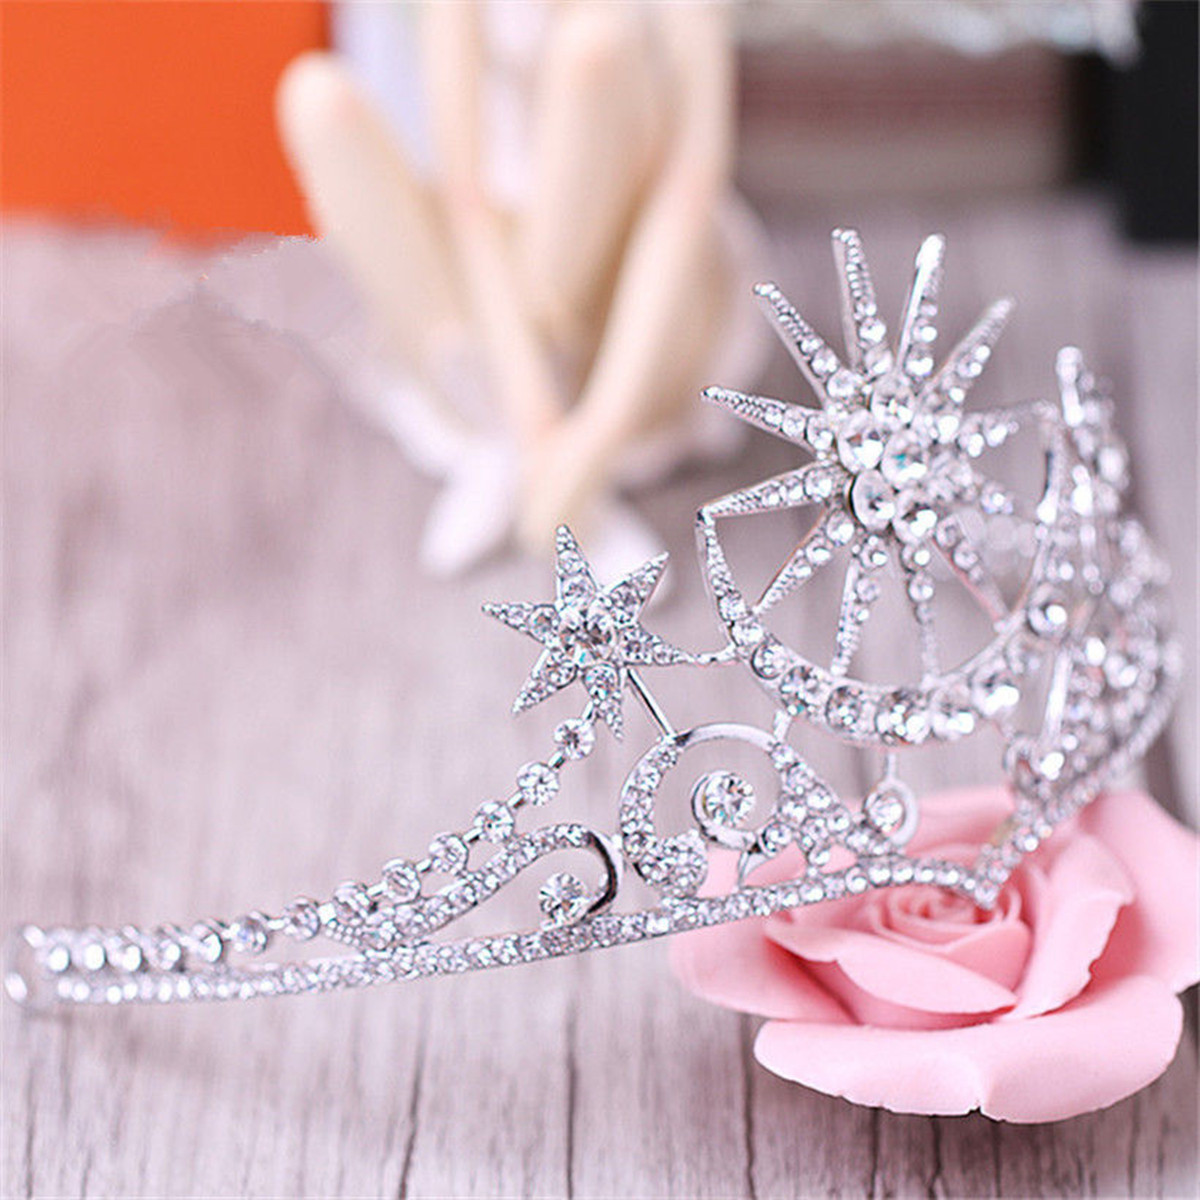 Bride Star Moon Queen Crystal Crown Tiara Wedding Bridal Party Prom Headbrand Hair Jewelry